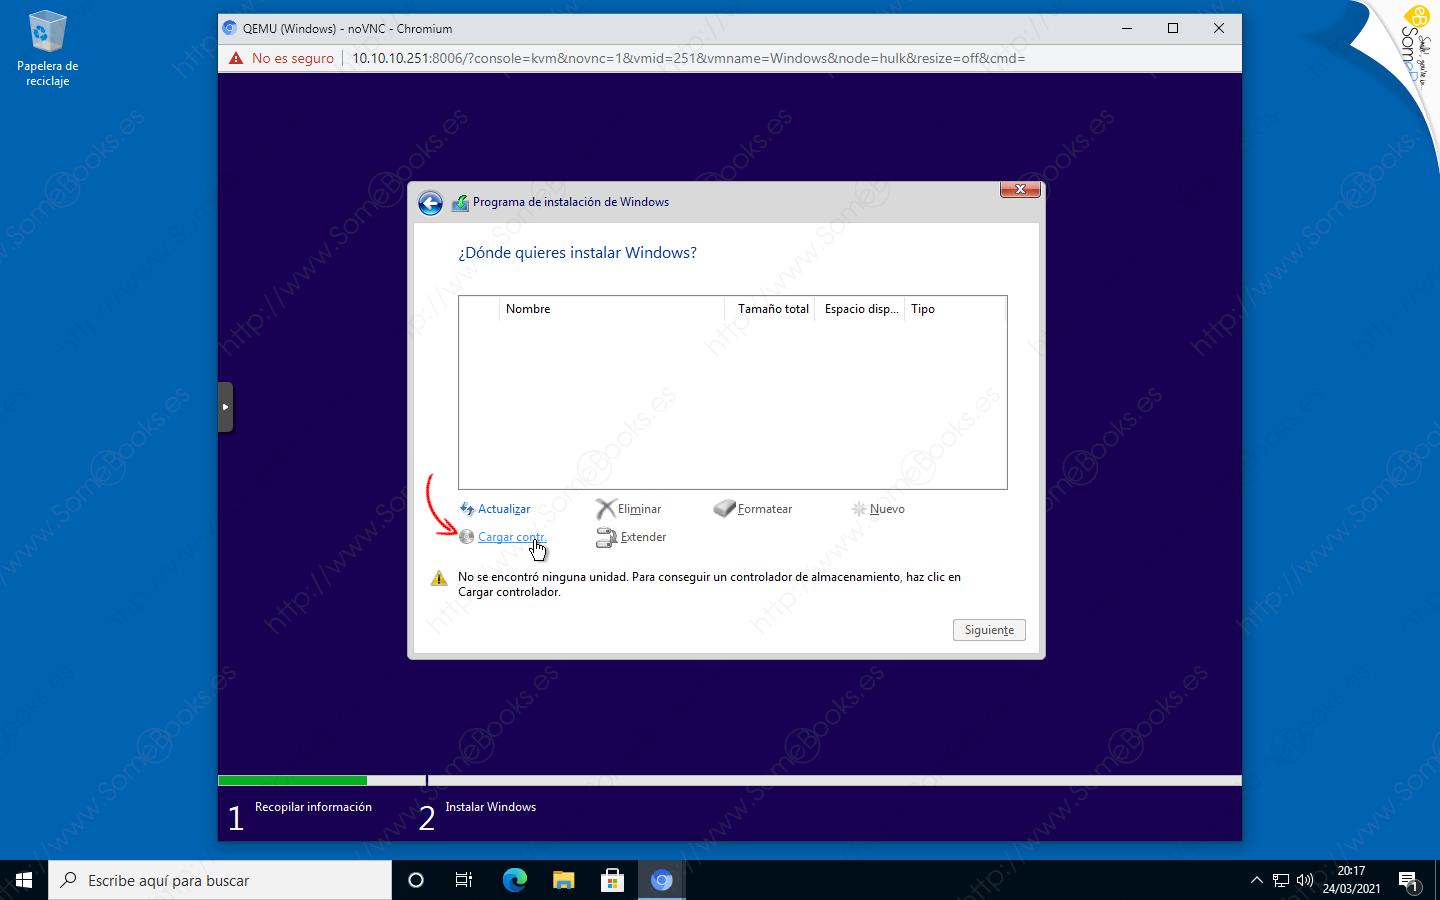 Instalar-Windows-10-en-una-maquina-virtual-sobre-Proxmox-VE-004